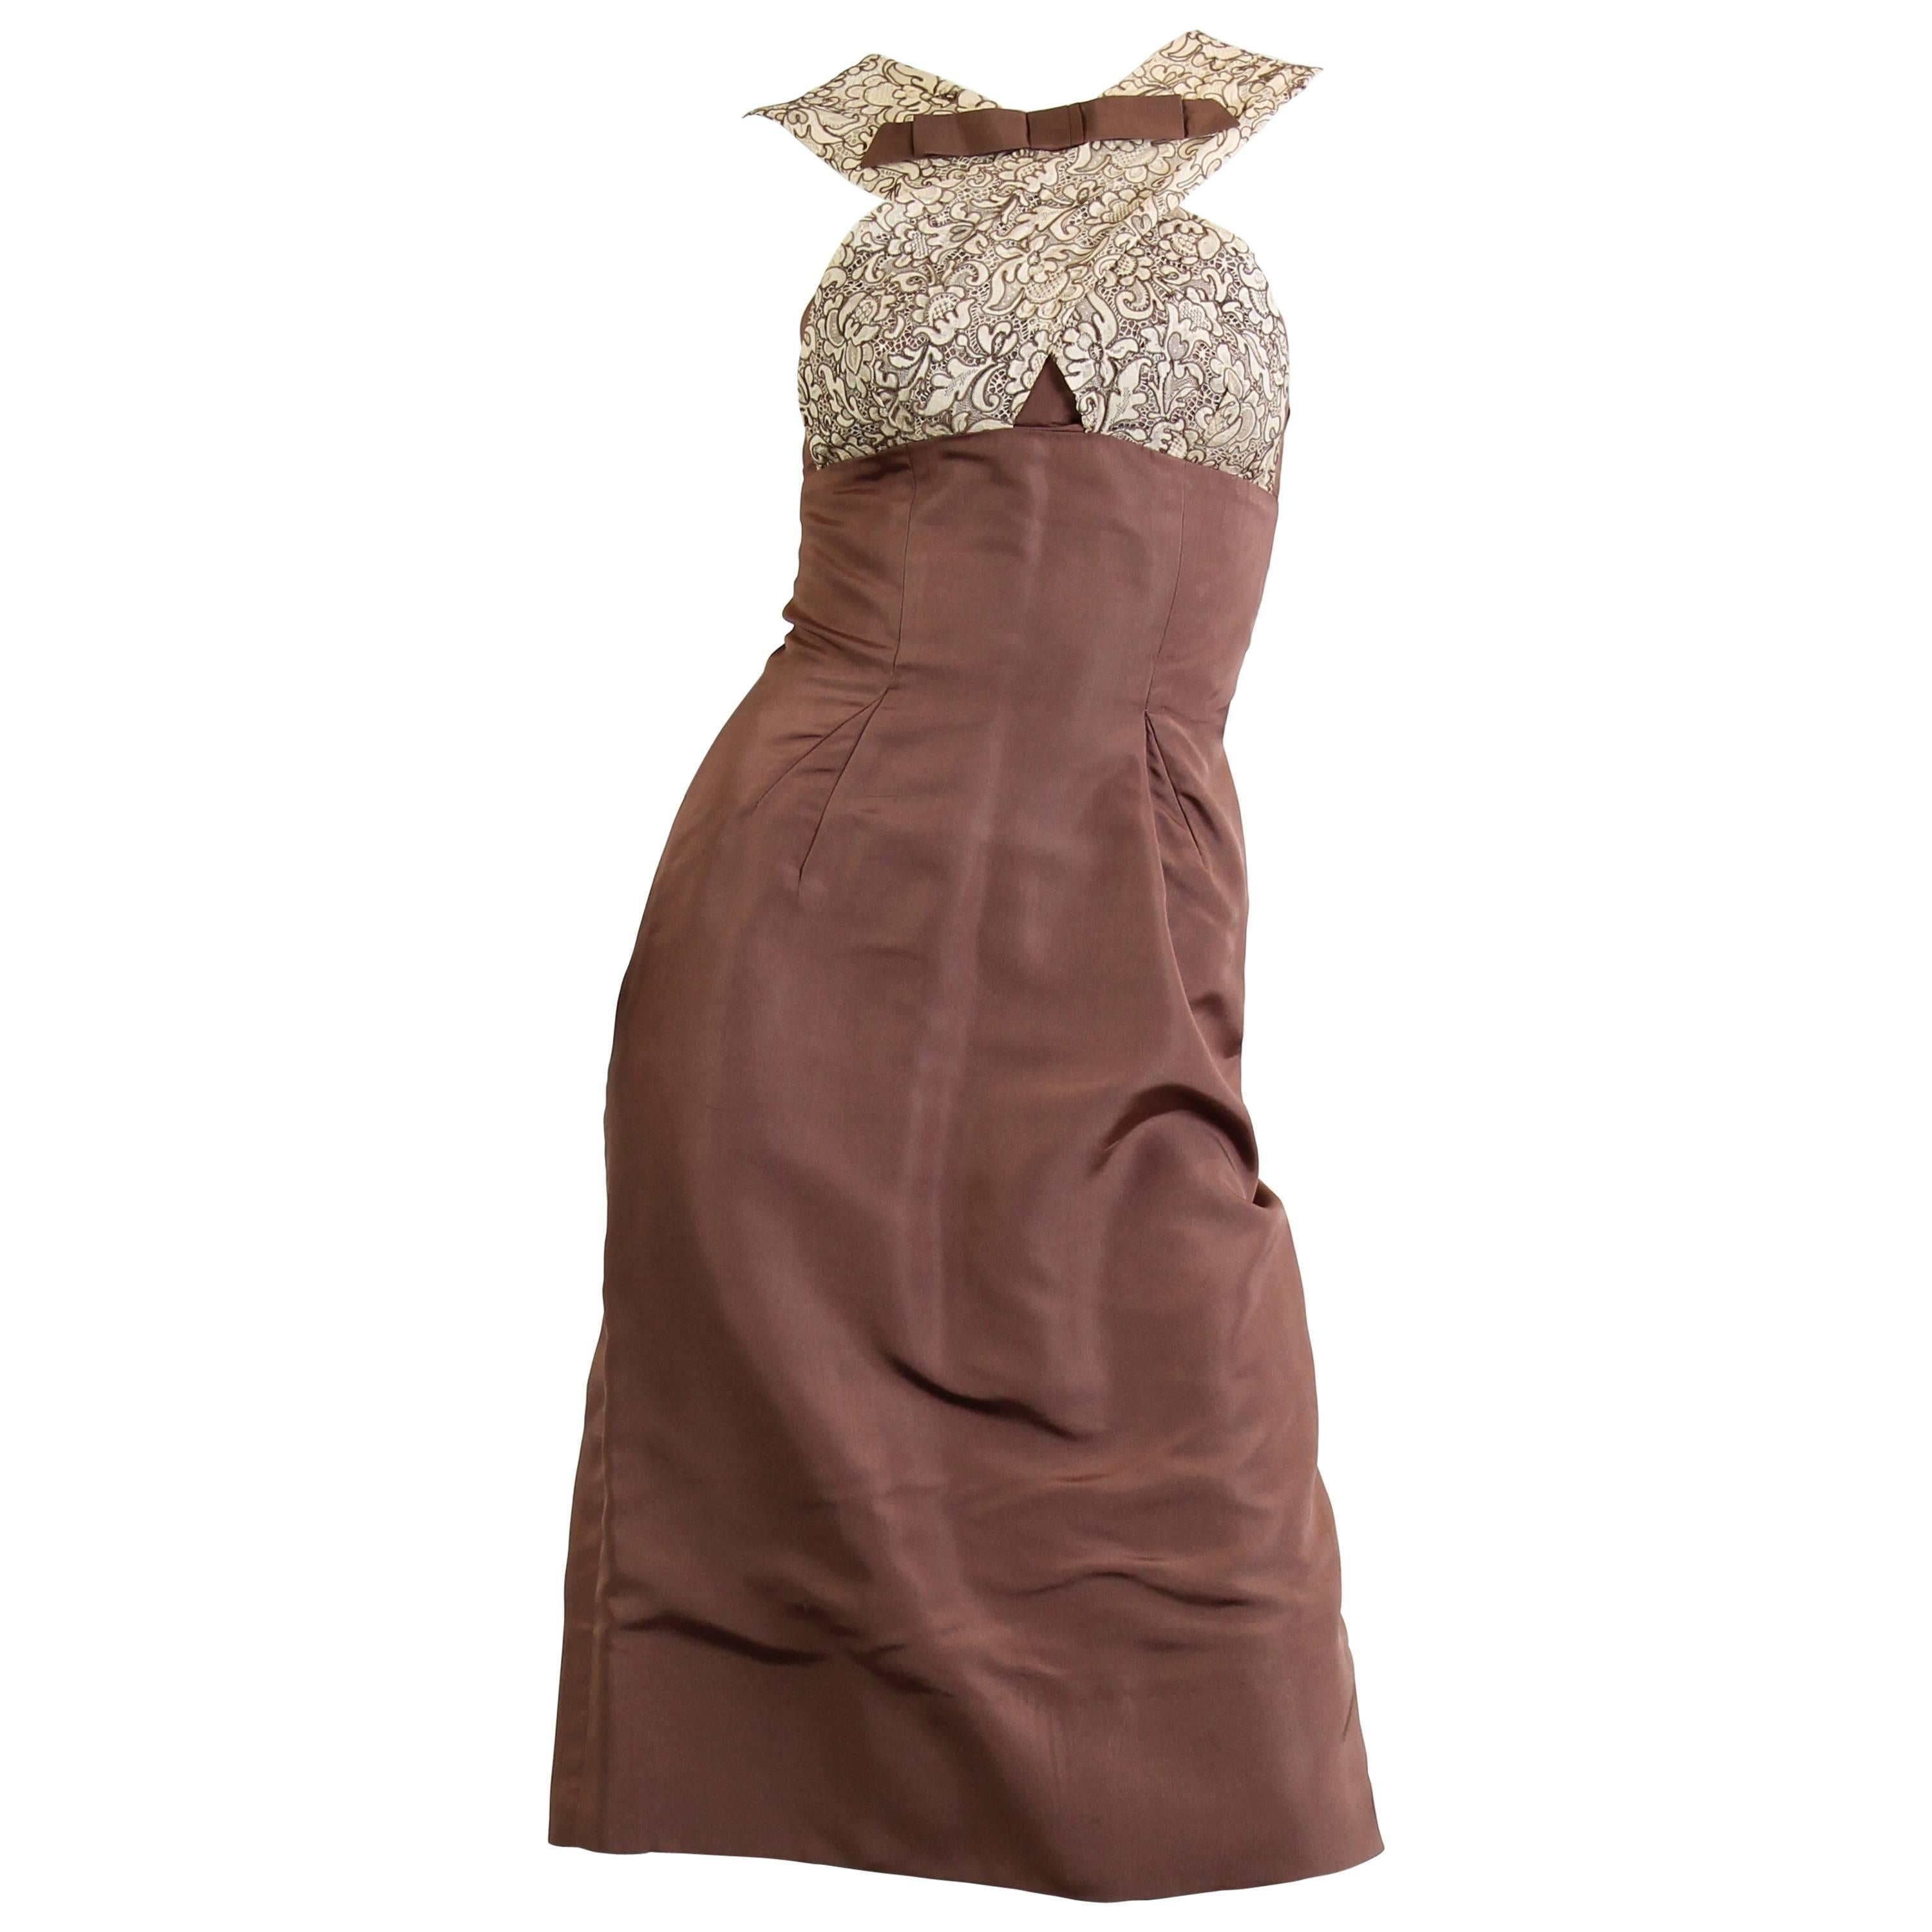 1950S OLEG CASSINI Chocolate Brown Silk Faille Jackie-O Style Dress With Lace B